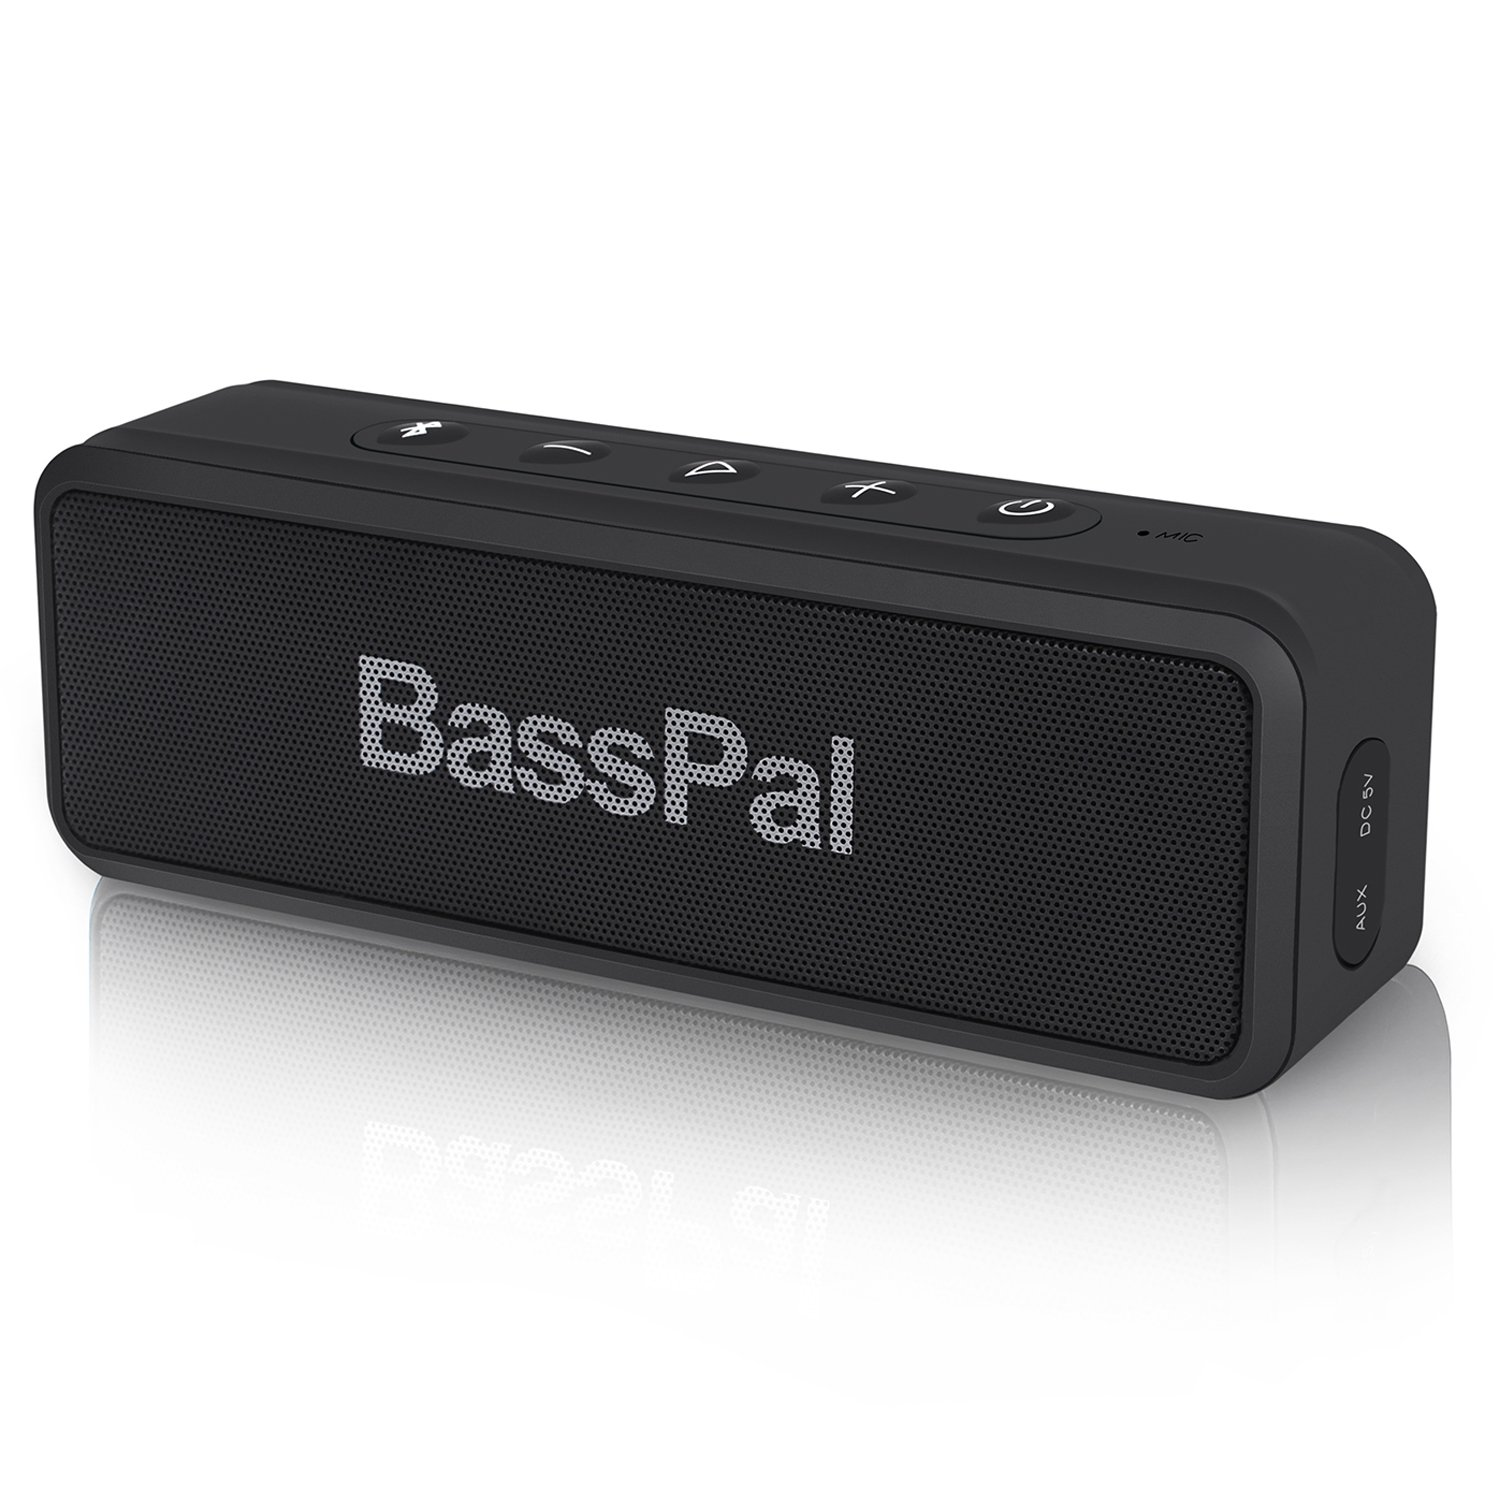 BassPal SoundRo X3 Portable Bluetooth Speaker with Loud Stereo Sound, Enhanced Bass, 24-Hour Playtime, 66 ft Bluetooth Range, Built-in Mic, Waterproof Wireless Speaker for Outdoors, Party, Travel